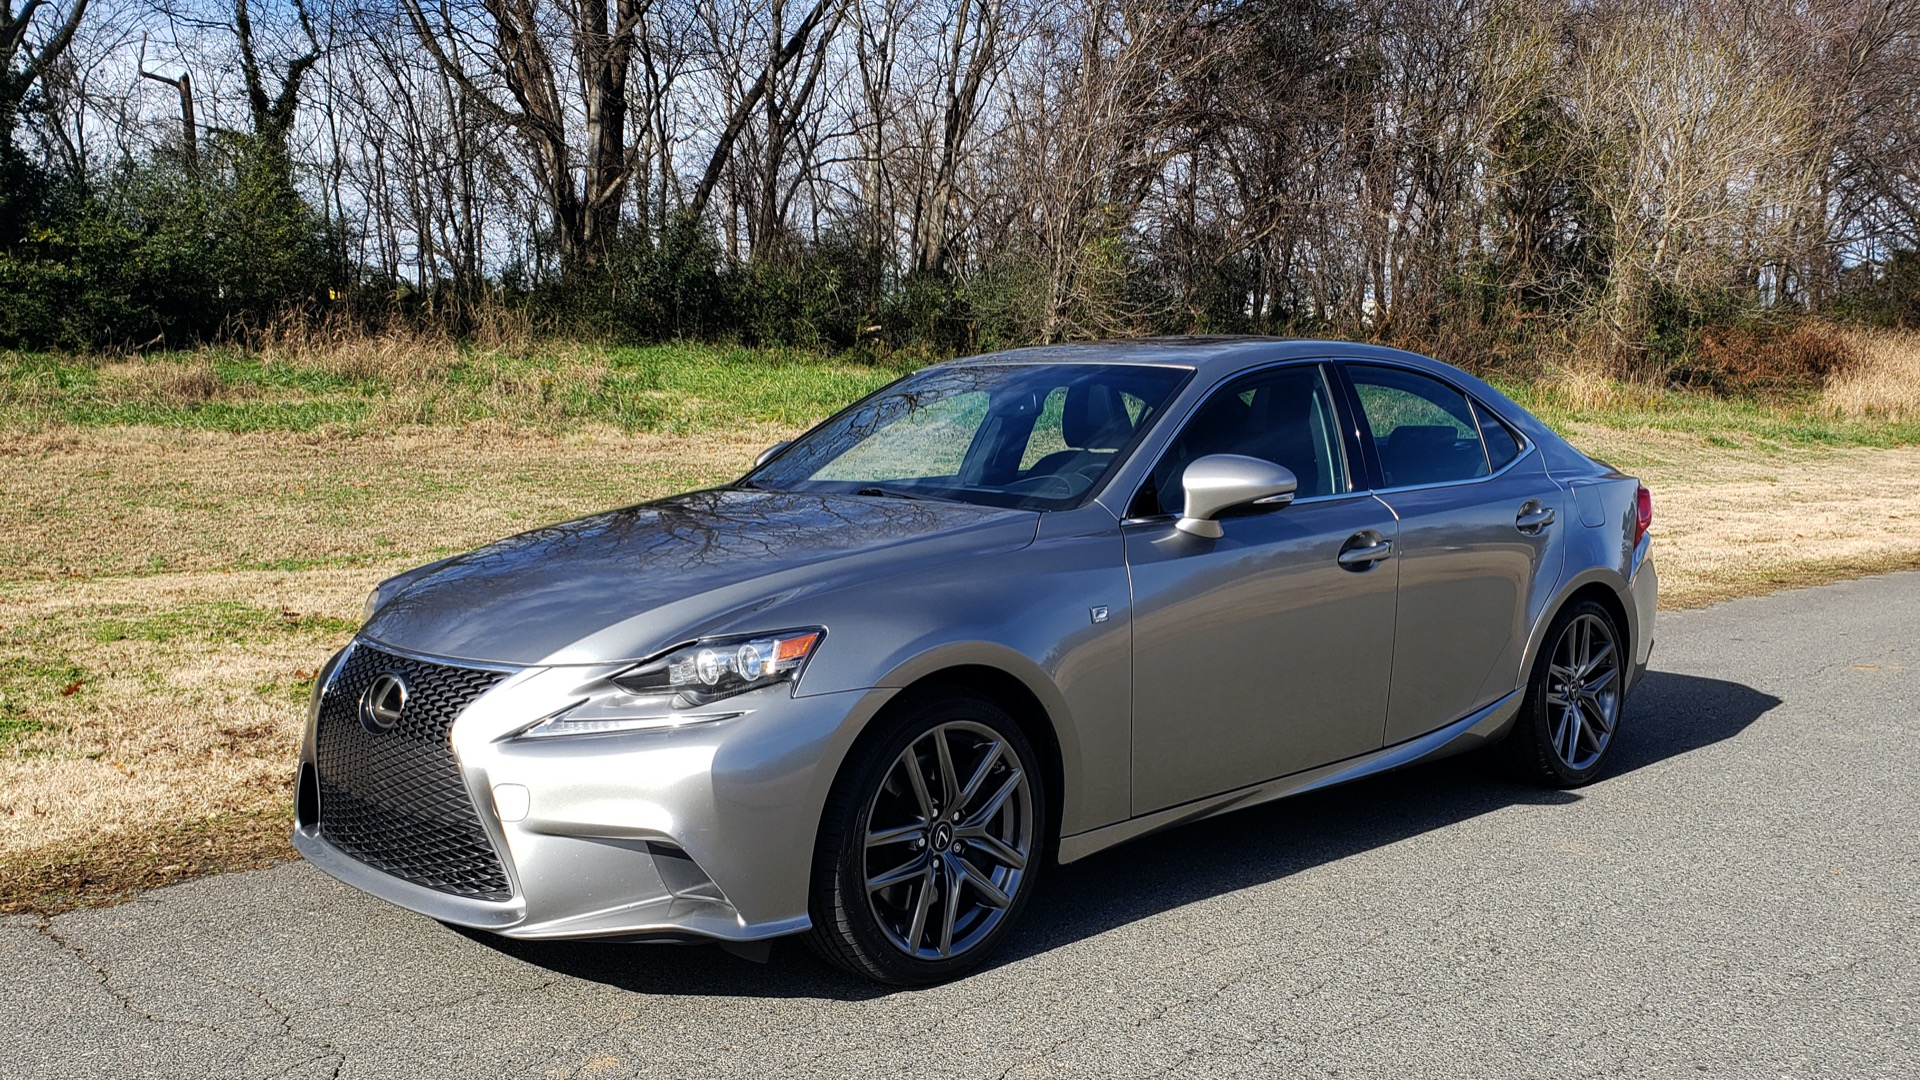 Used 2016 Lexus IS 200t F-SPORT / SUNROOF / NAV / BSM / DYNAMIC RADAR CRUISE for sale Sold at Formula Imports in Charlotte NC 28227 1